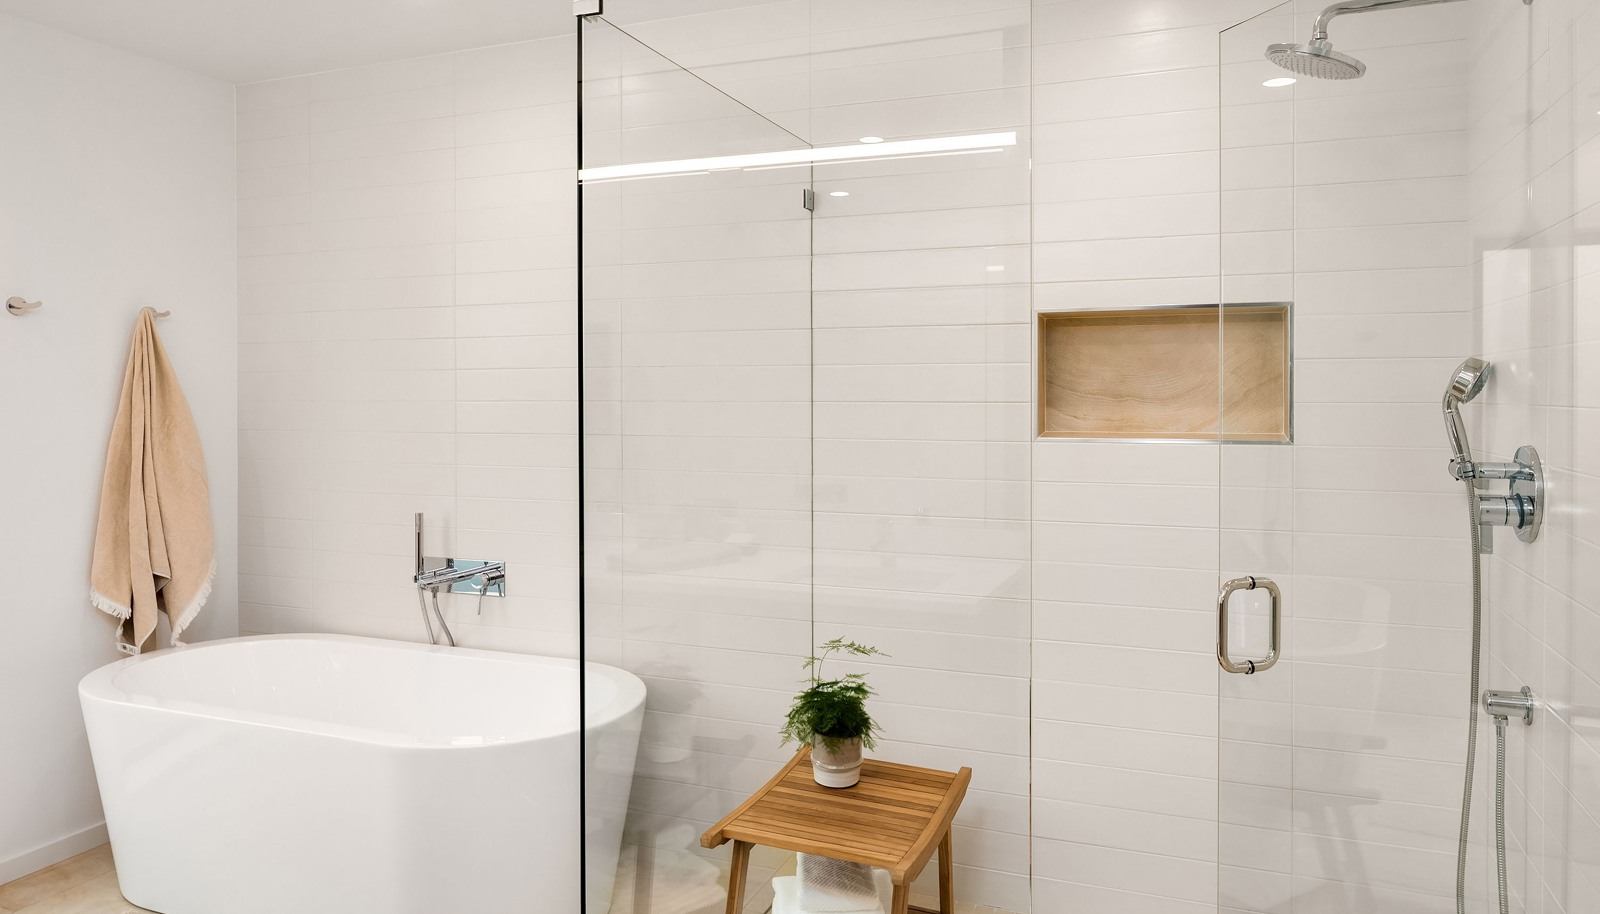 Floor to ceiling tile, soaking tub, curbless walk-in-shower.